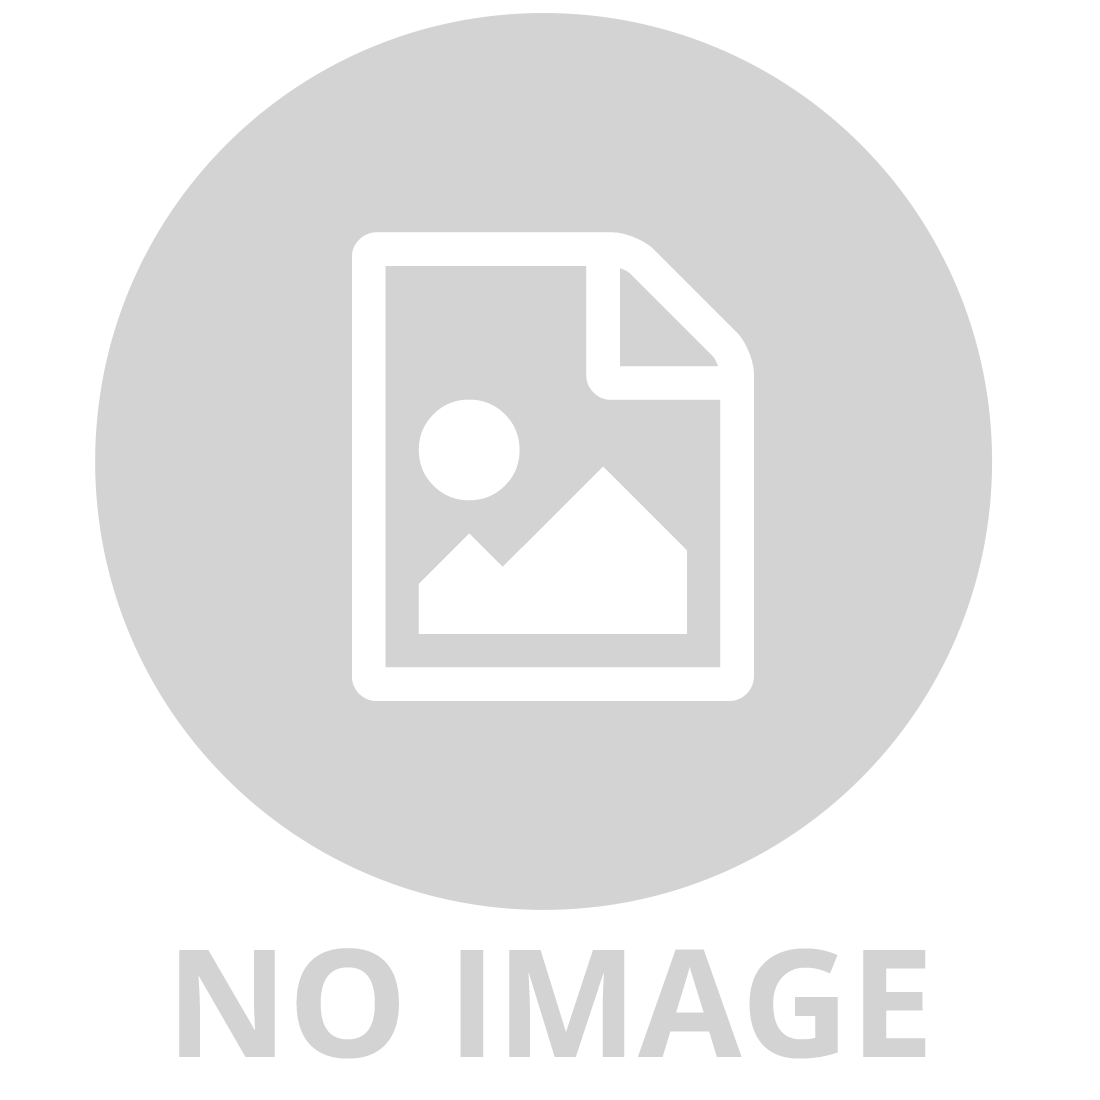 JOHN DEERE WHEEL LOADER 944K SCALE 1:50